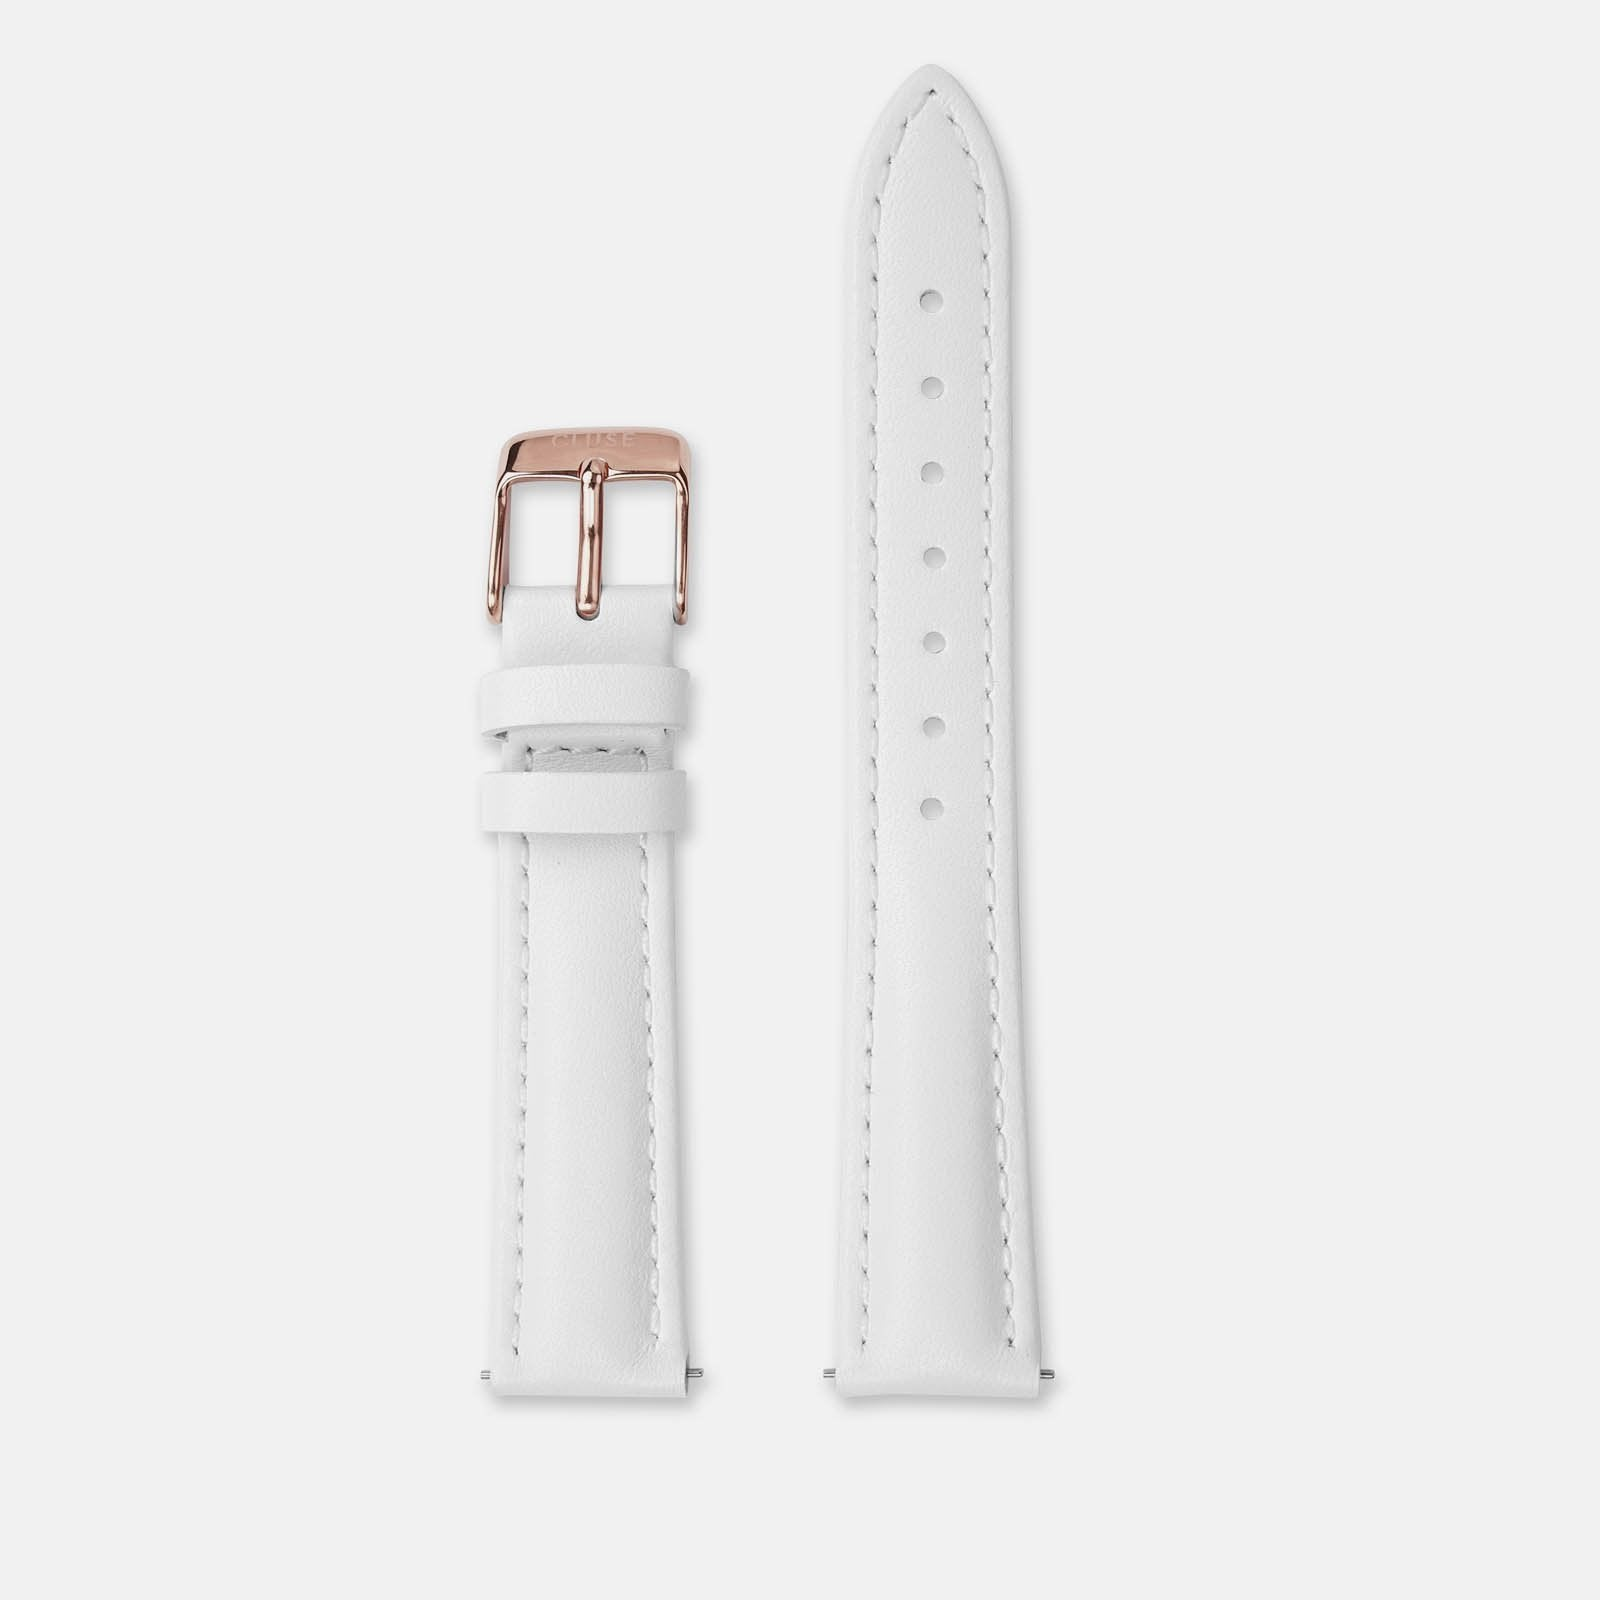 CLUSE 16 mm Strap White/Rose Gold CLS377 - strap